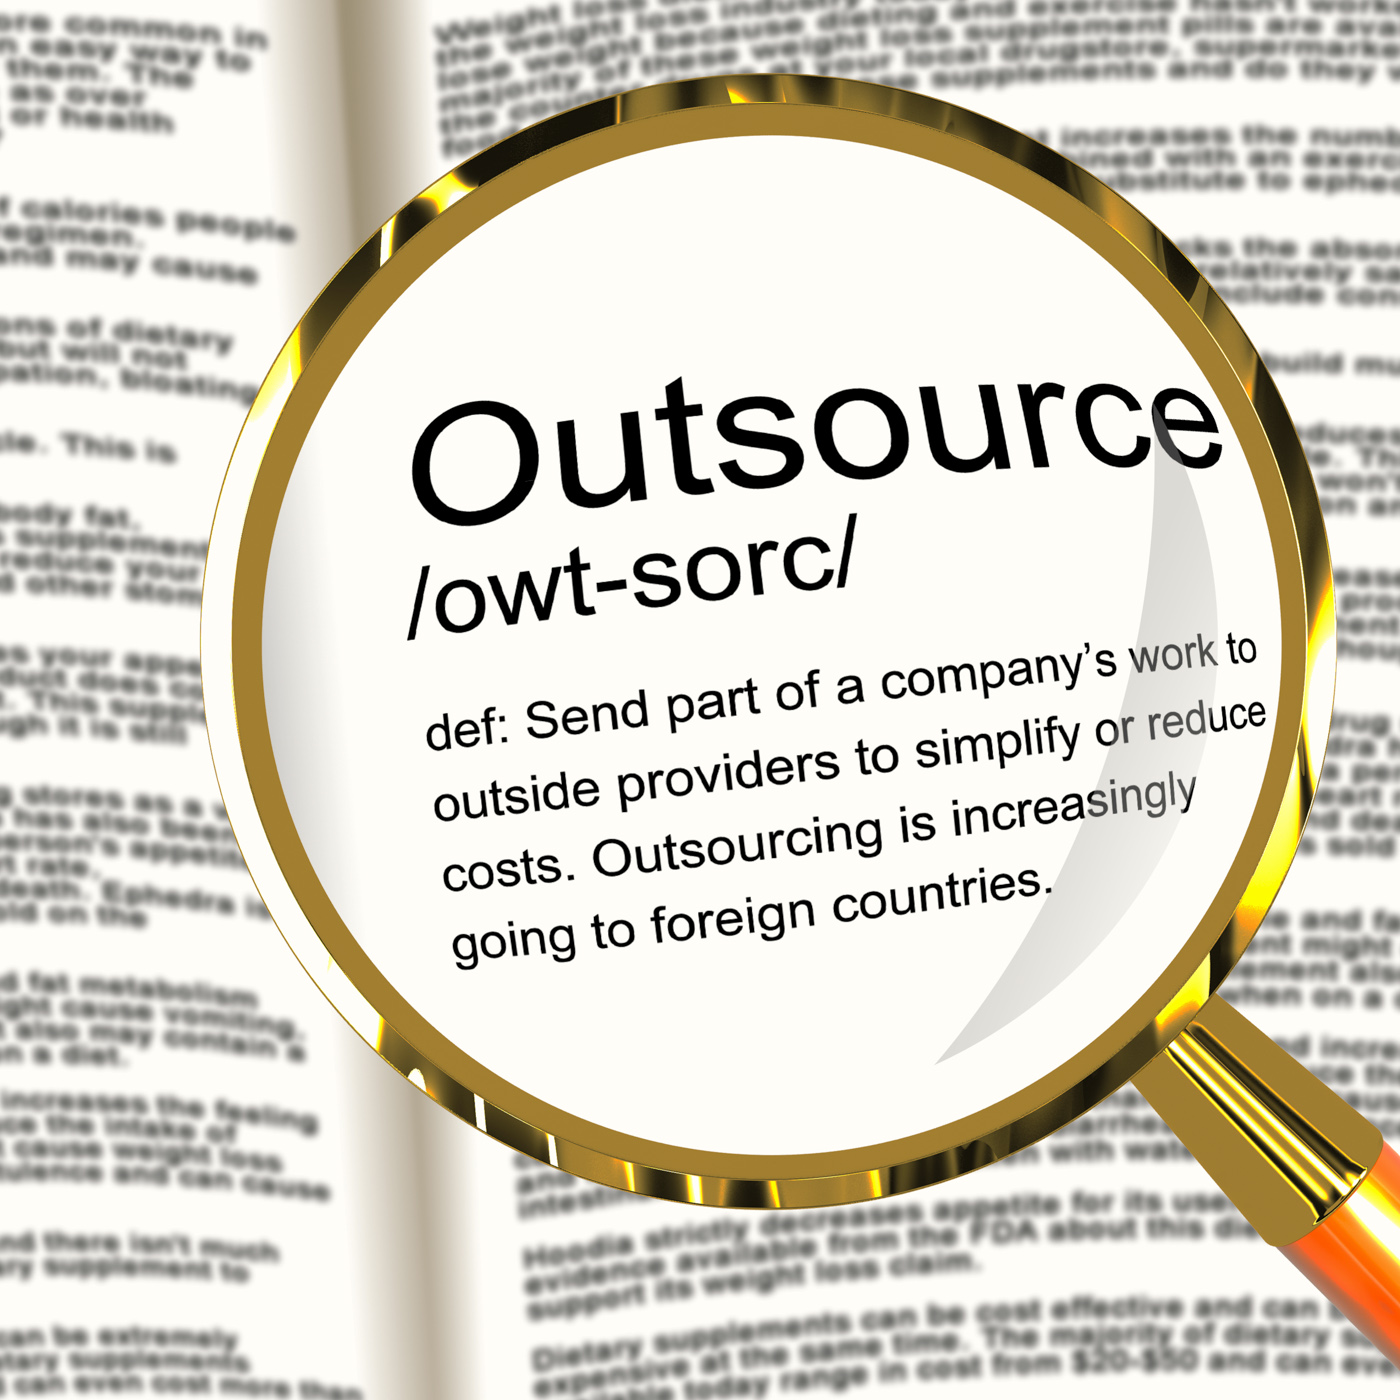 Free photo: Outsource Definition Magnifier Showing Subcontracting